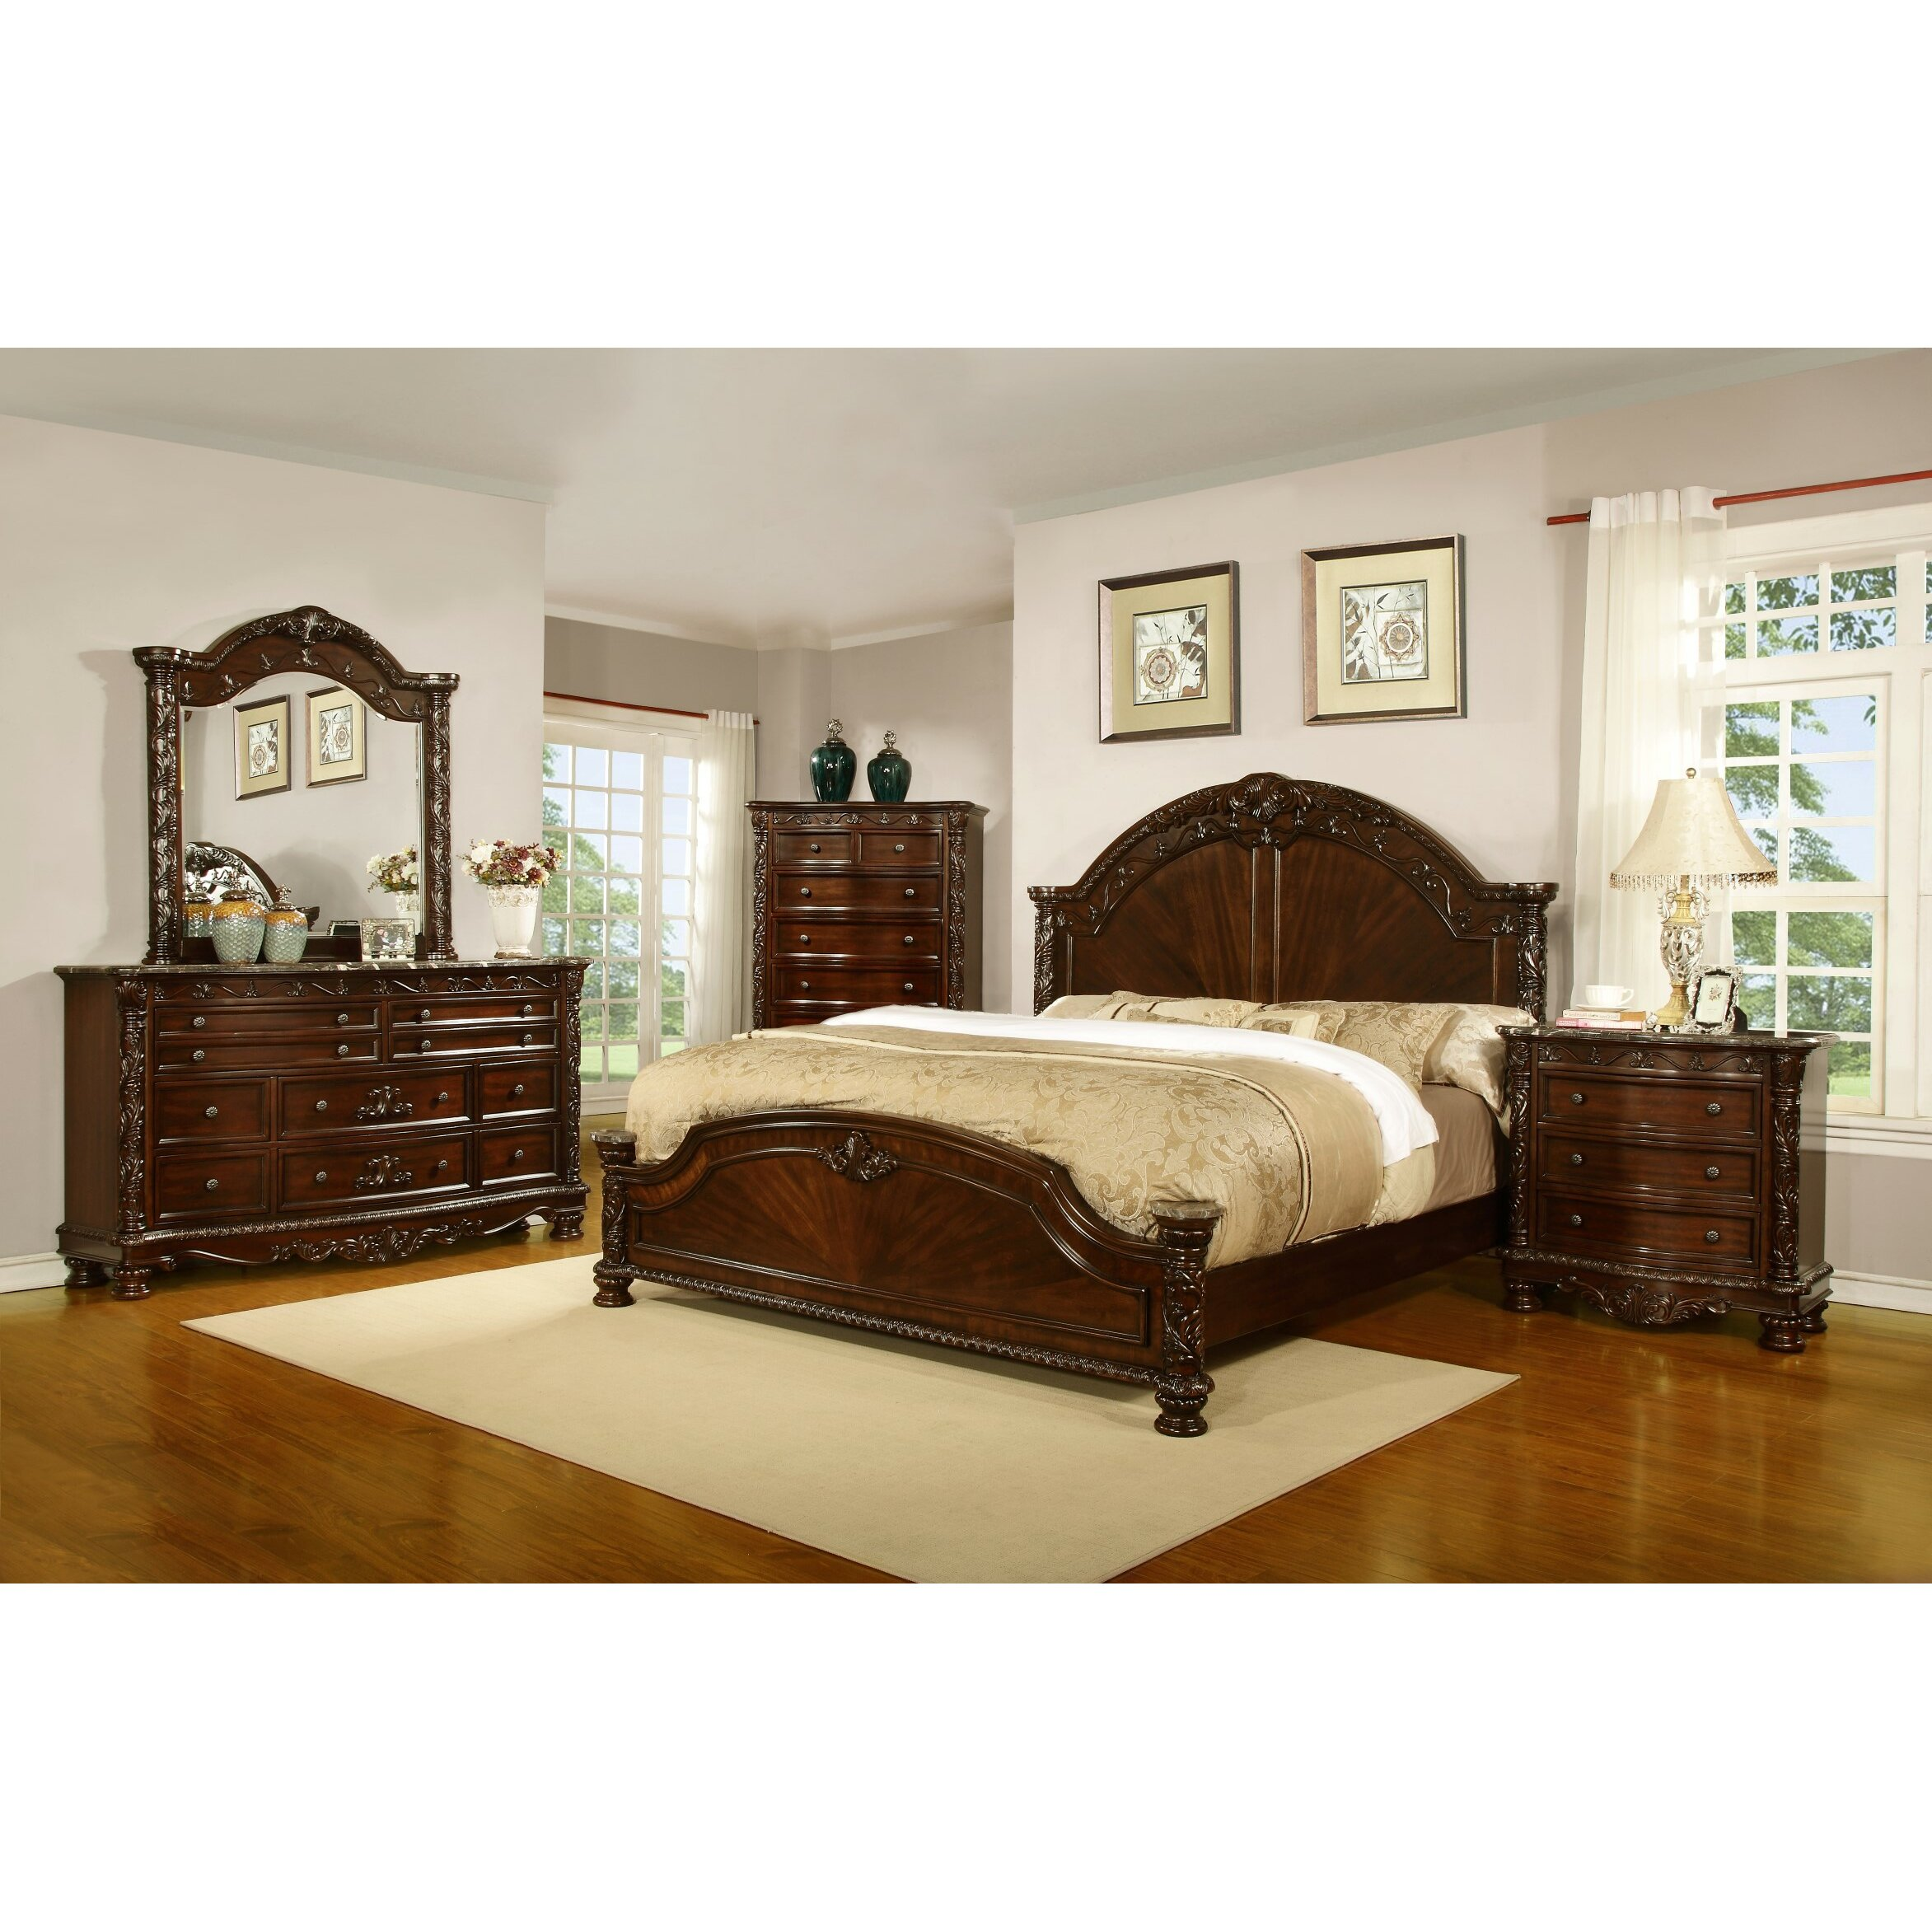 Leather Bedroom Suites Sleigh Bedroom Sets Youll Love Wayfair